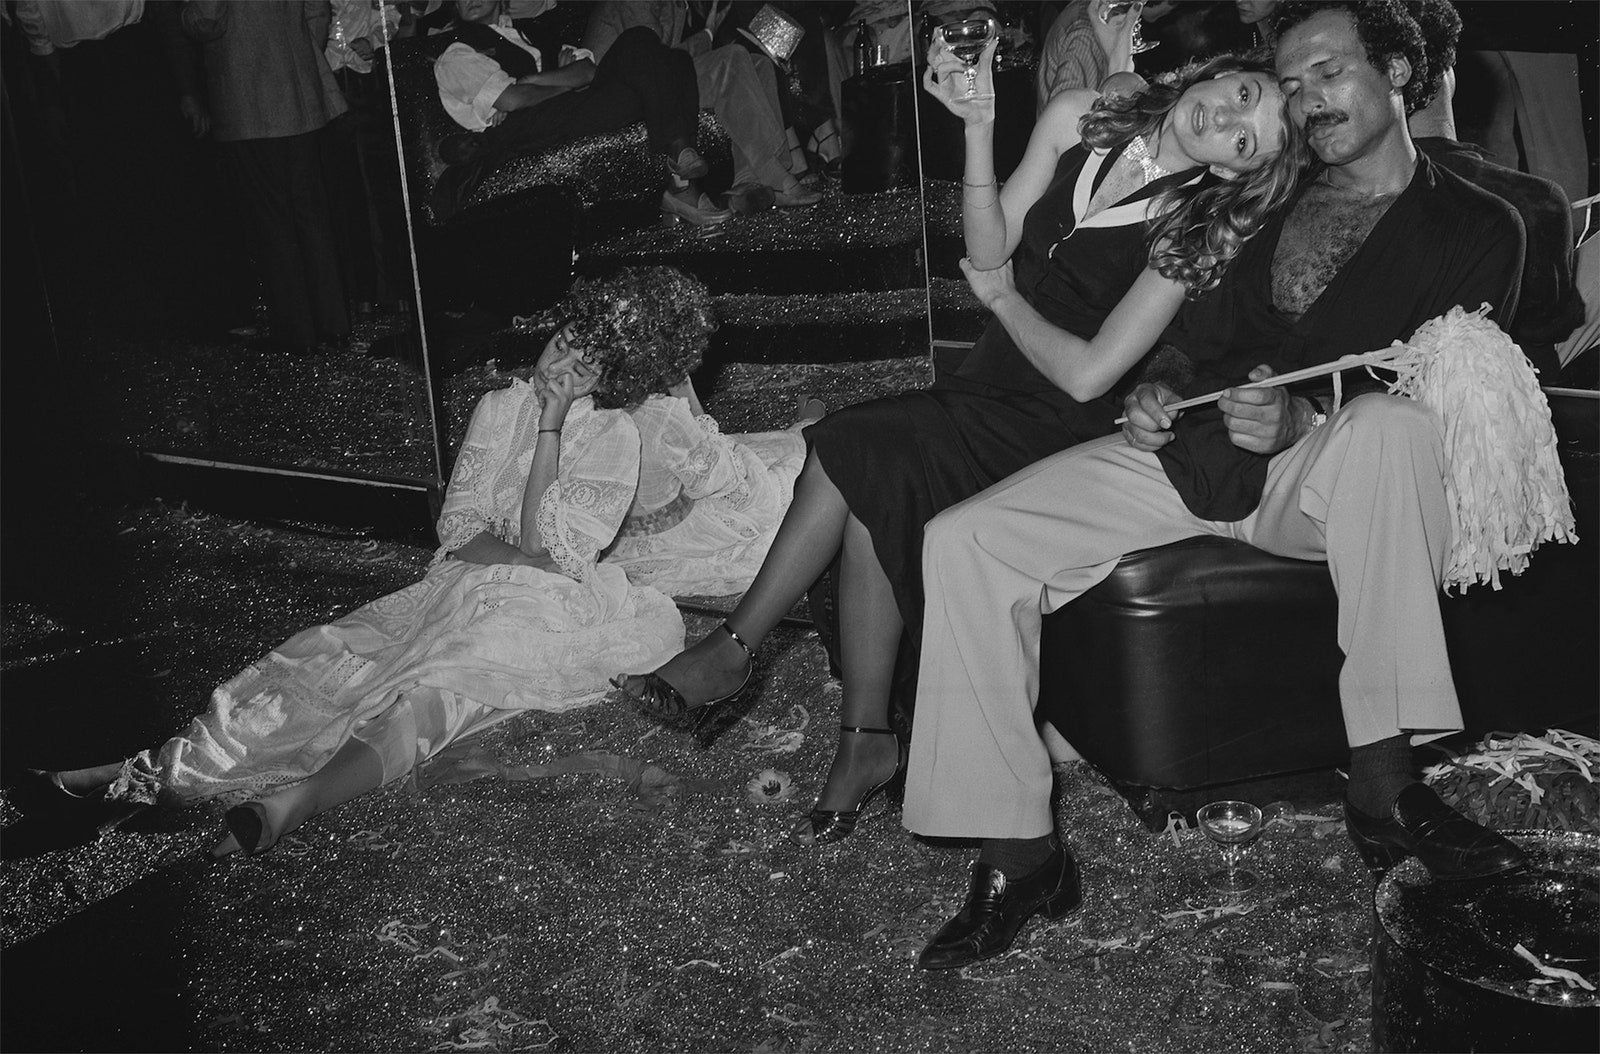 .  . 1978.    54.  19781980.  Tod Papageorge courtesy Galerie Thomas Zander Cologne